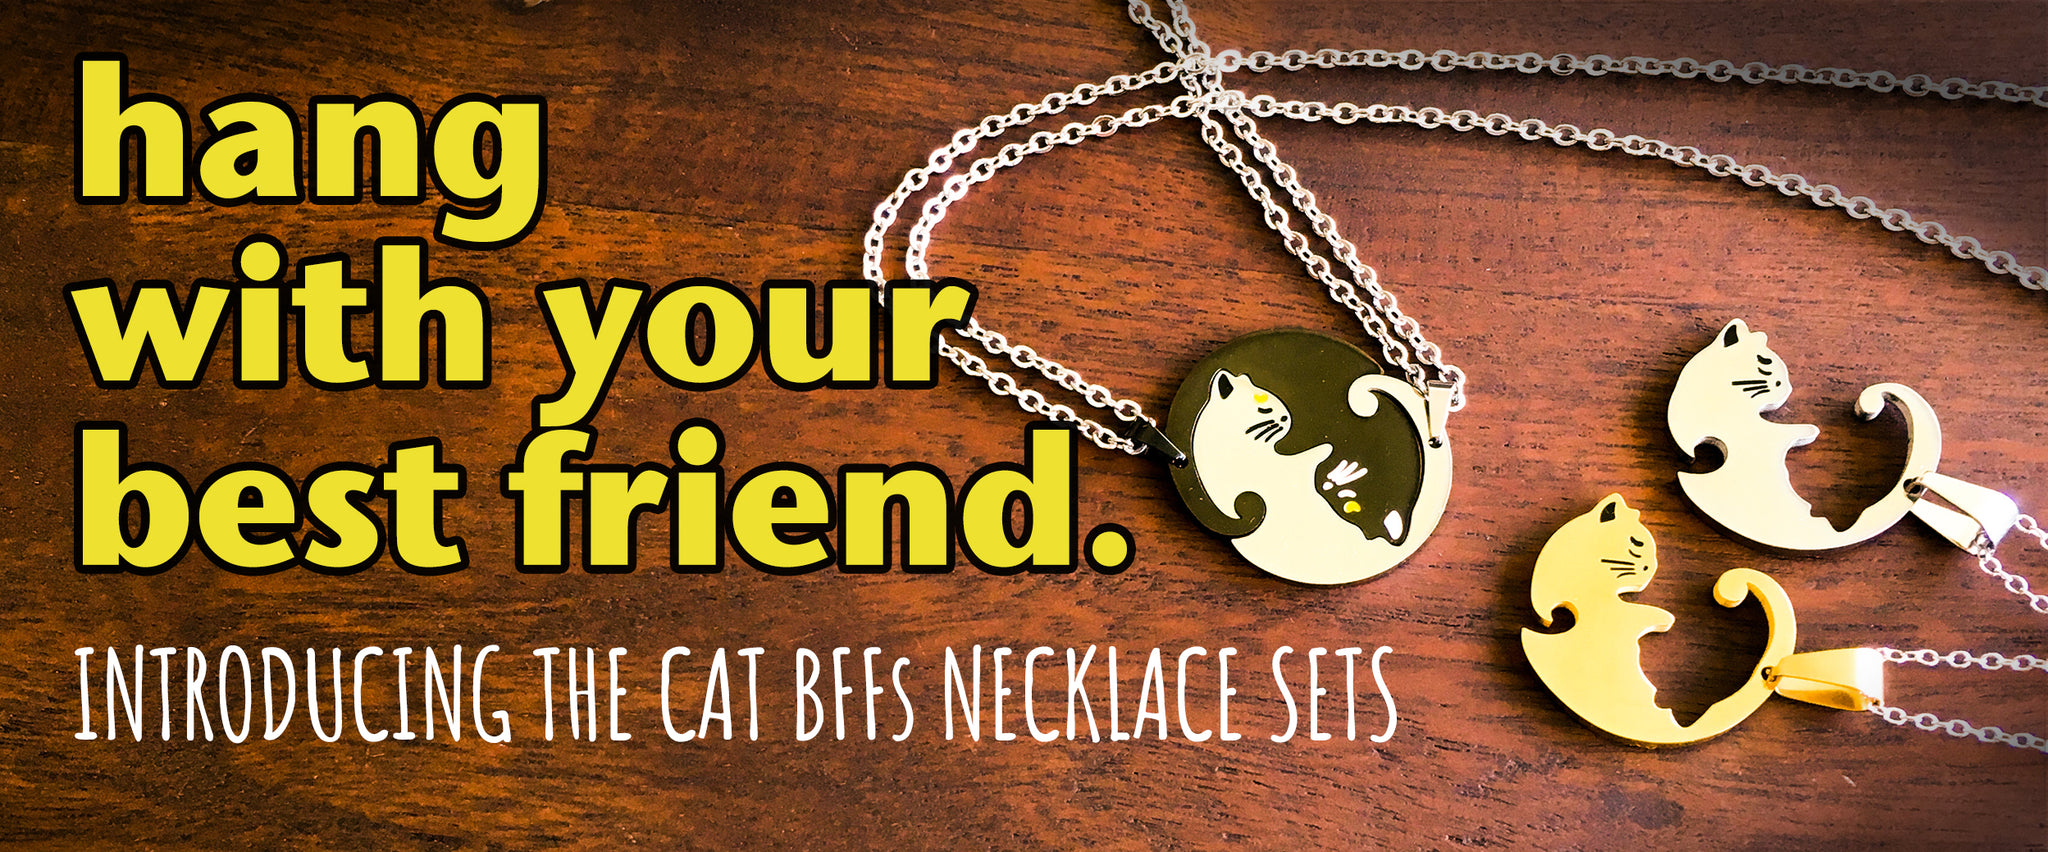 cat necklaces